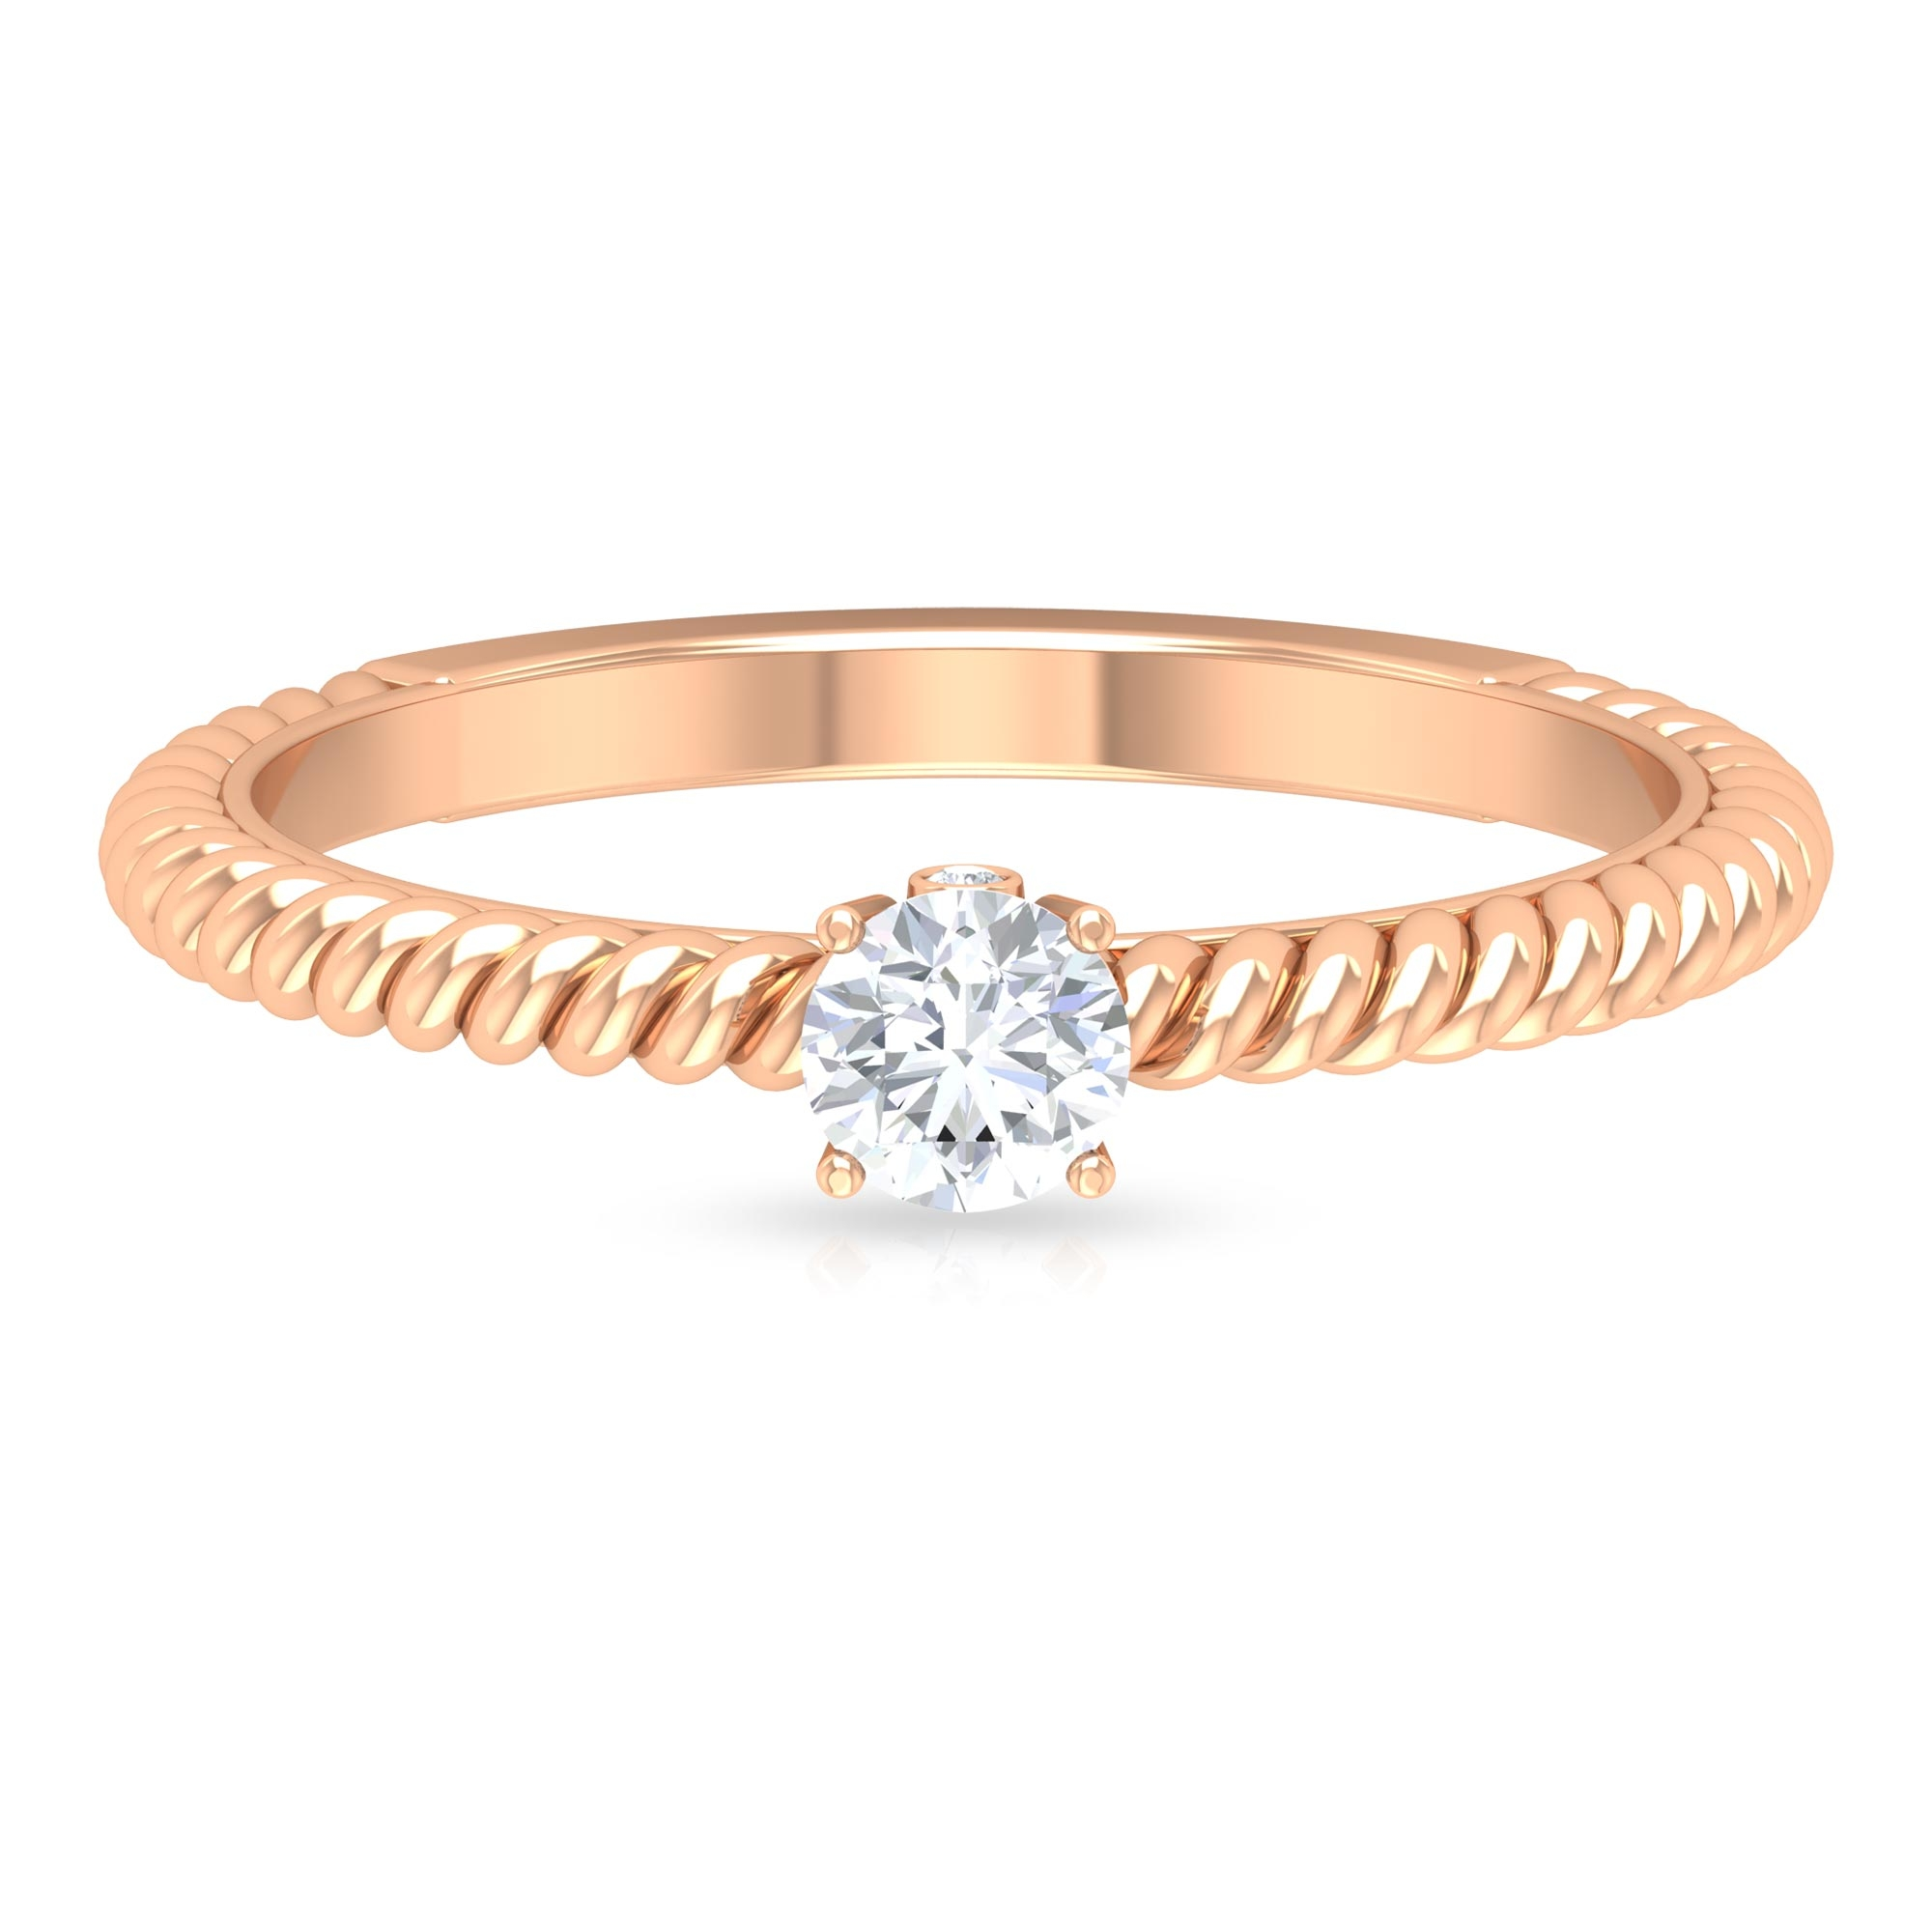 1/2 CT Round Cut Diamond Solitaire Ring with Surprise Diamond and Twisted Rope Details